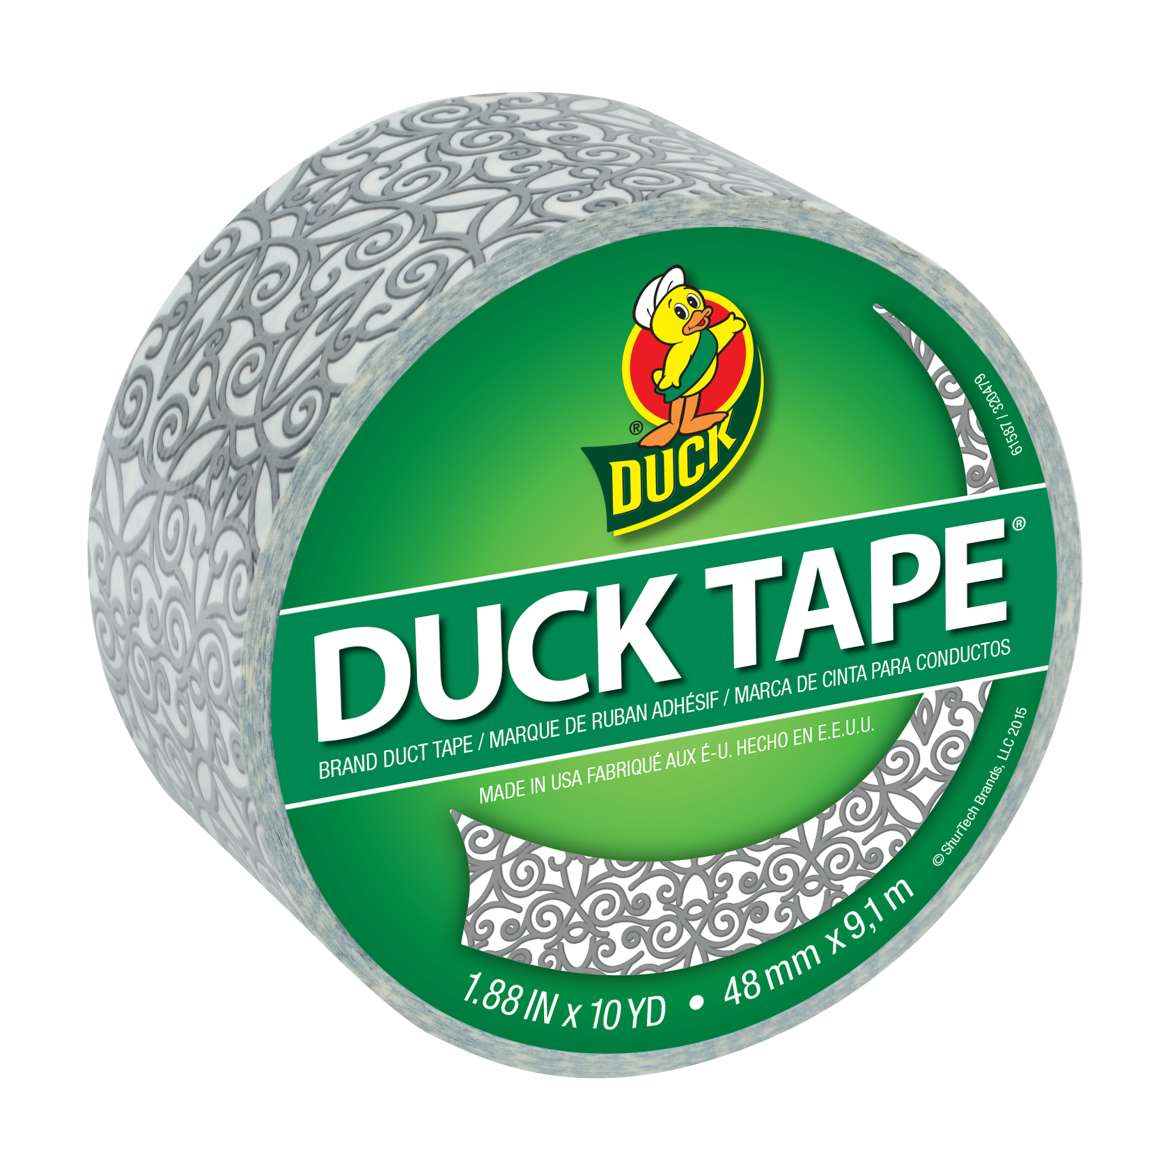 Printed Duck Tape® Brand Duct Tape - Silver Scroll, 1.88 in. x 10 yd. Image